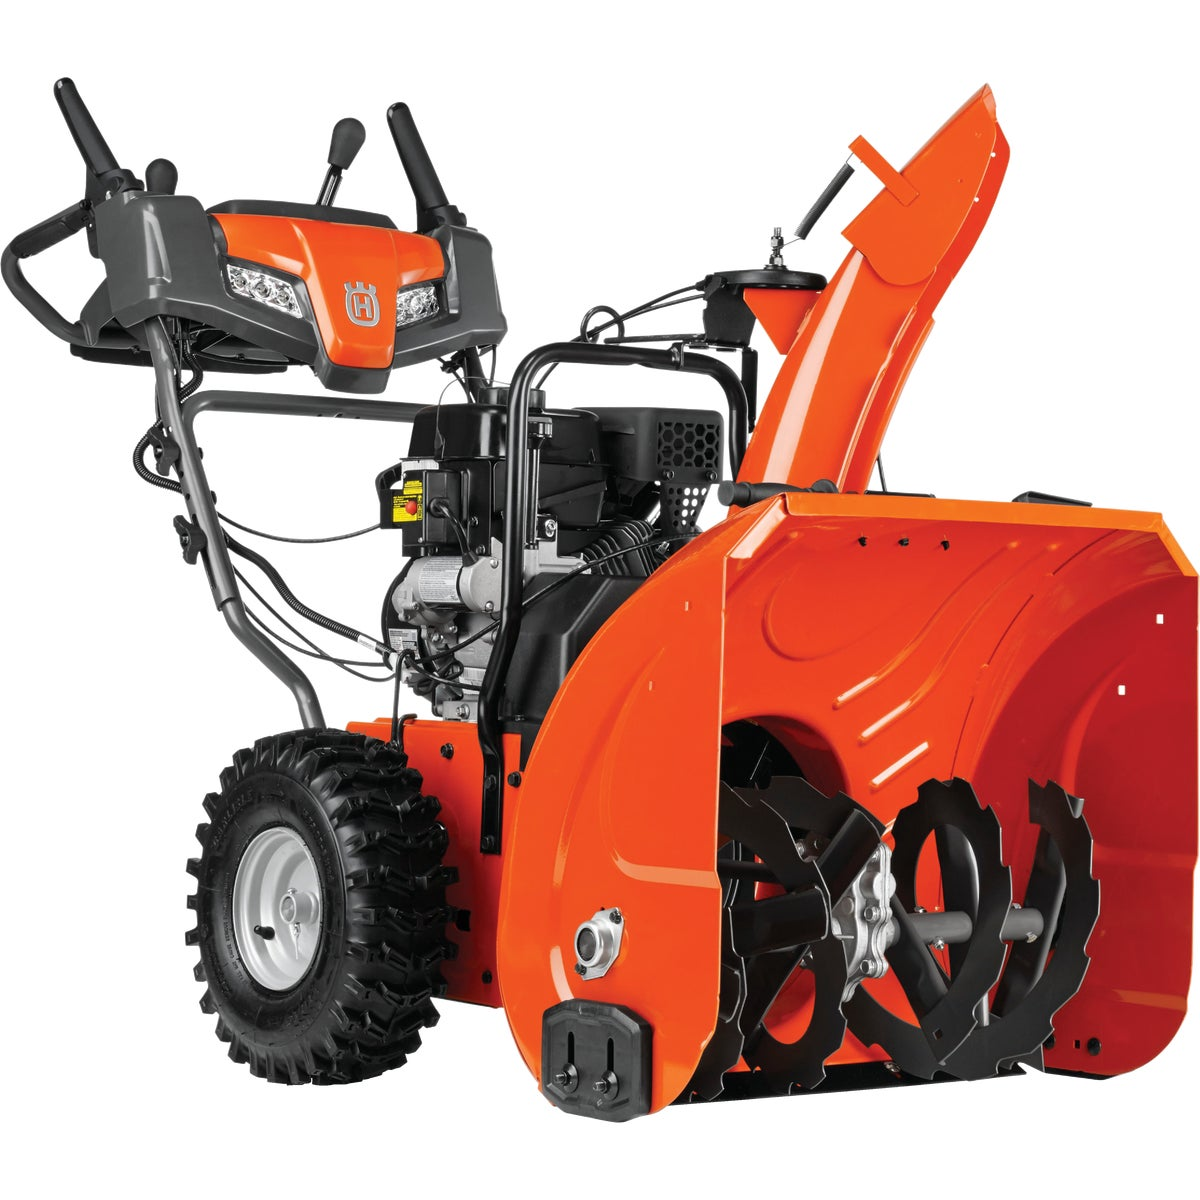 "24"" 2-STAGE SNOWTHROWER - 961930070 by Husqvarna Outdoor"